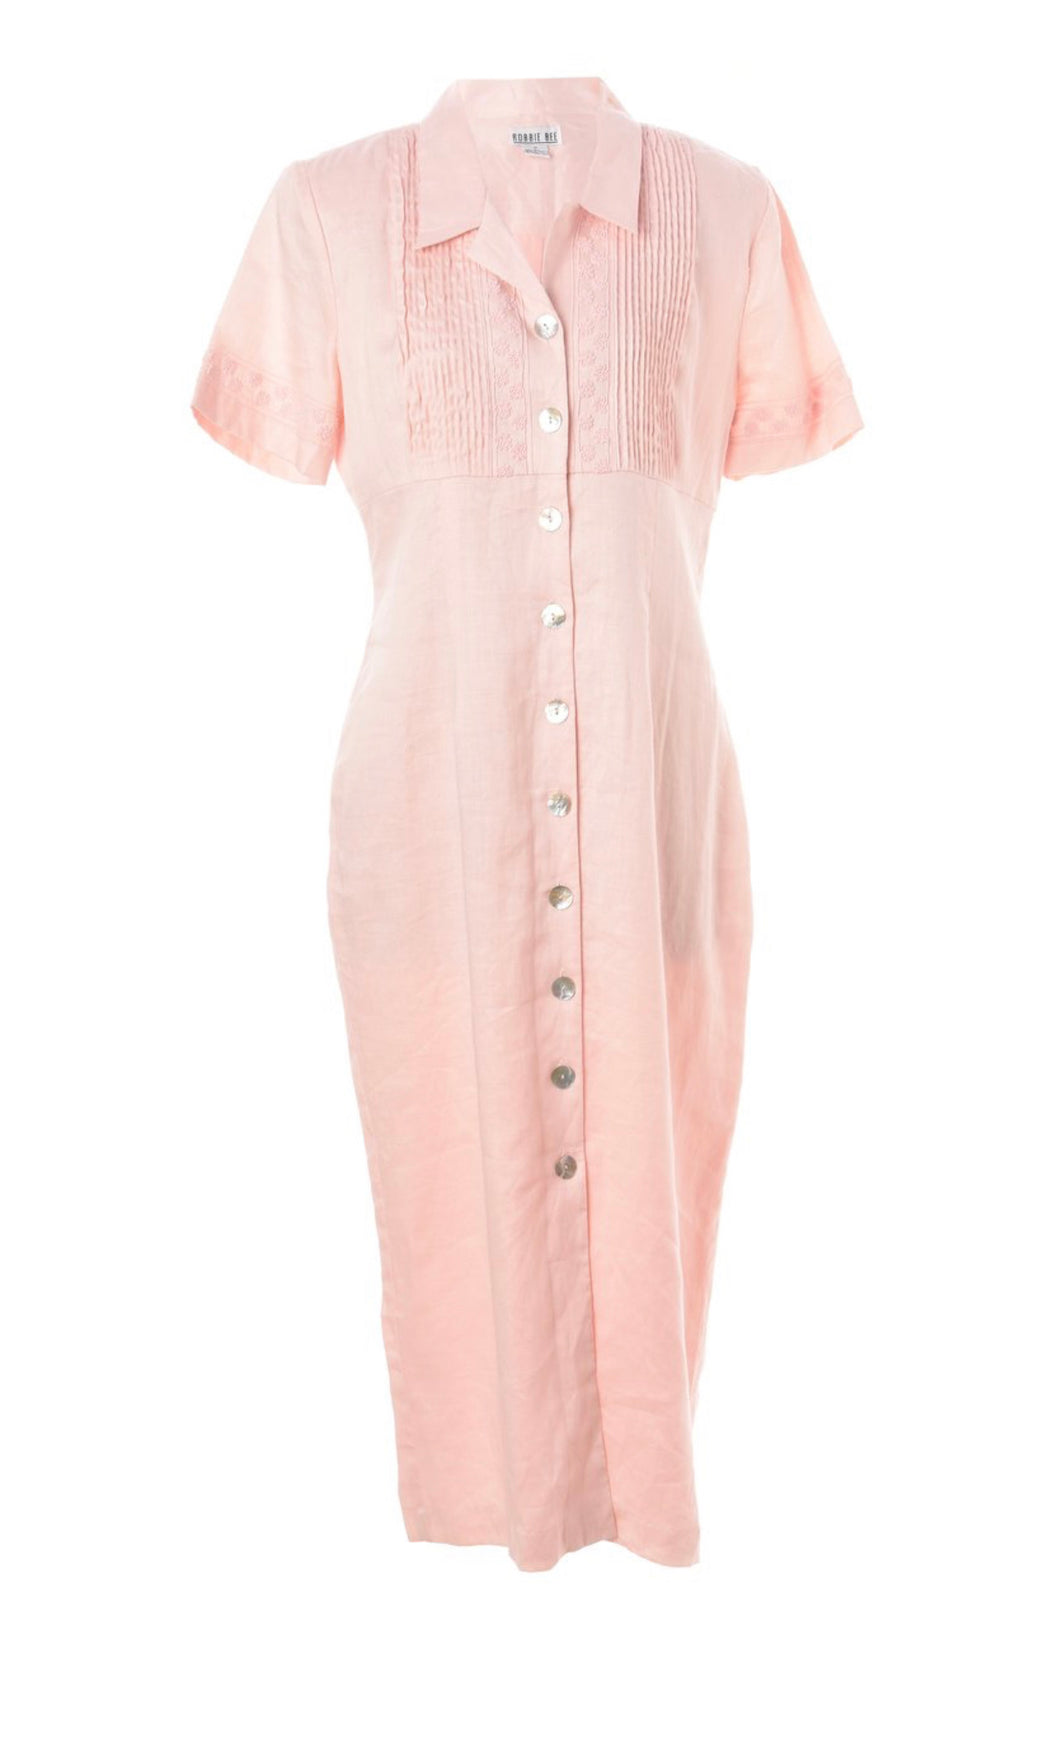 The Luna pink linen dress